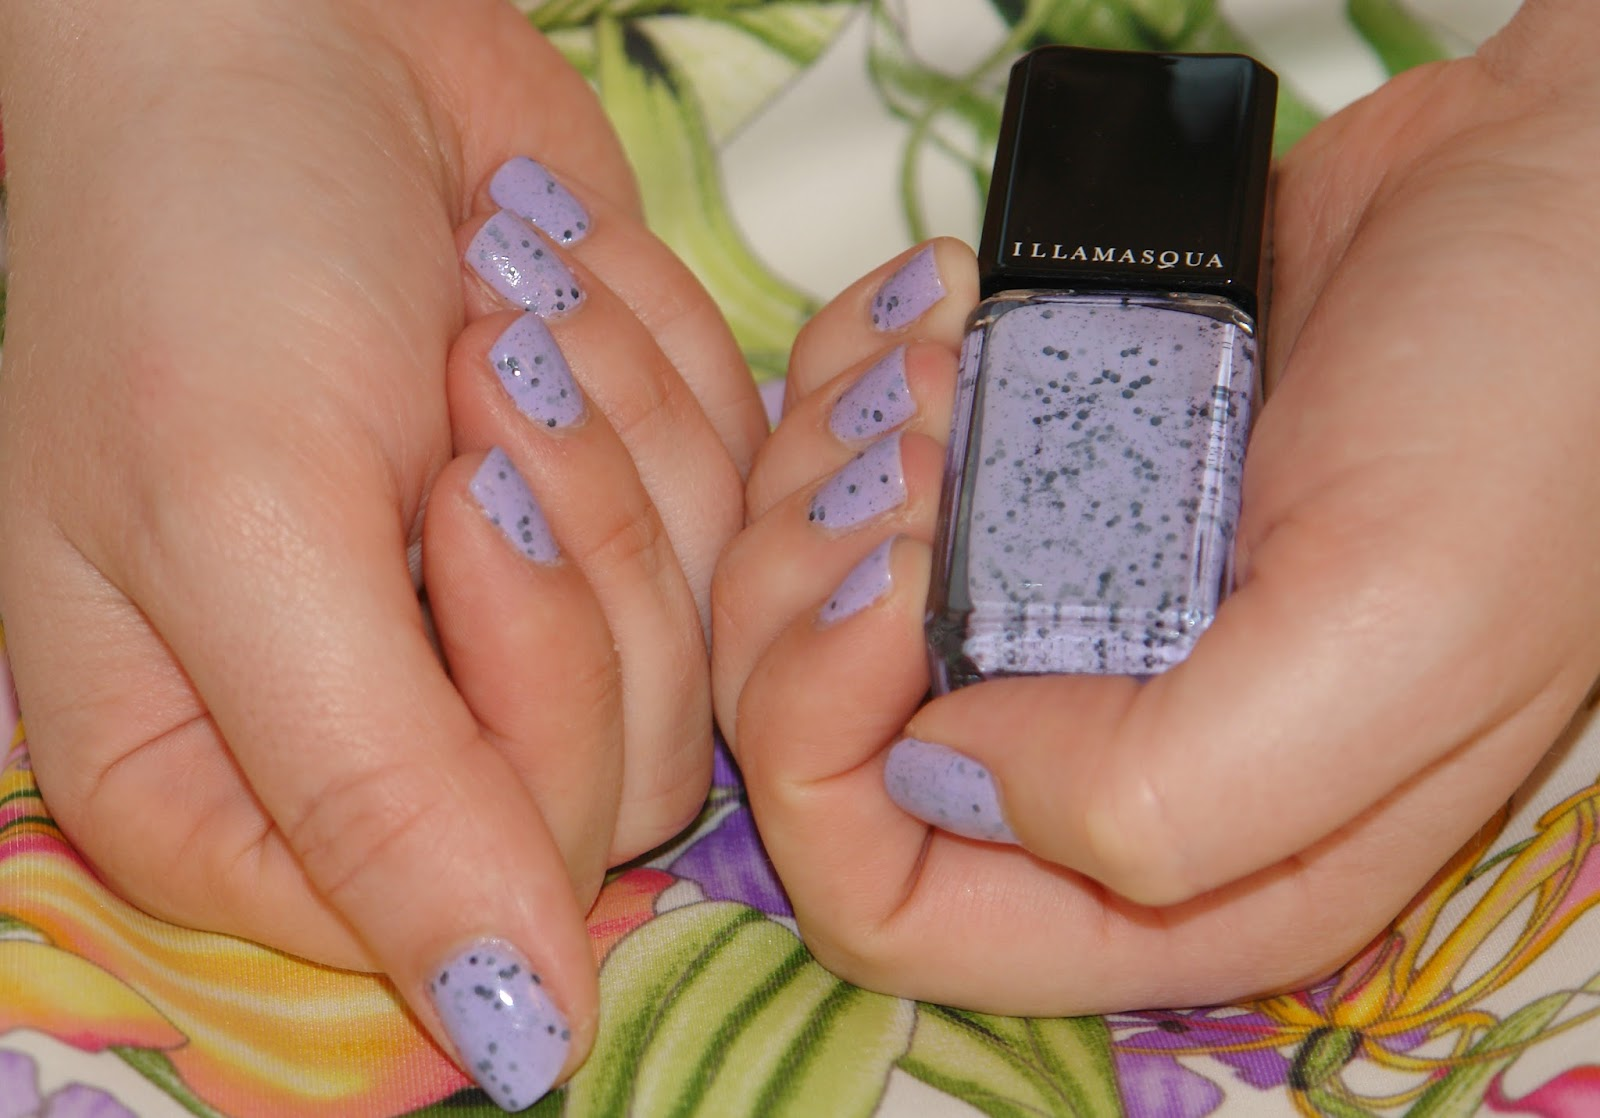 NAILS: Illamasqua nail polish in Speckle, review, swatches